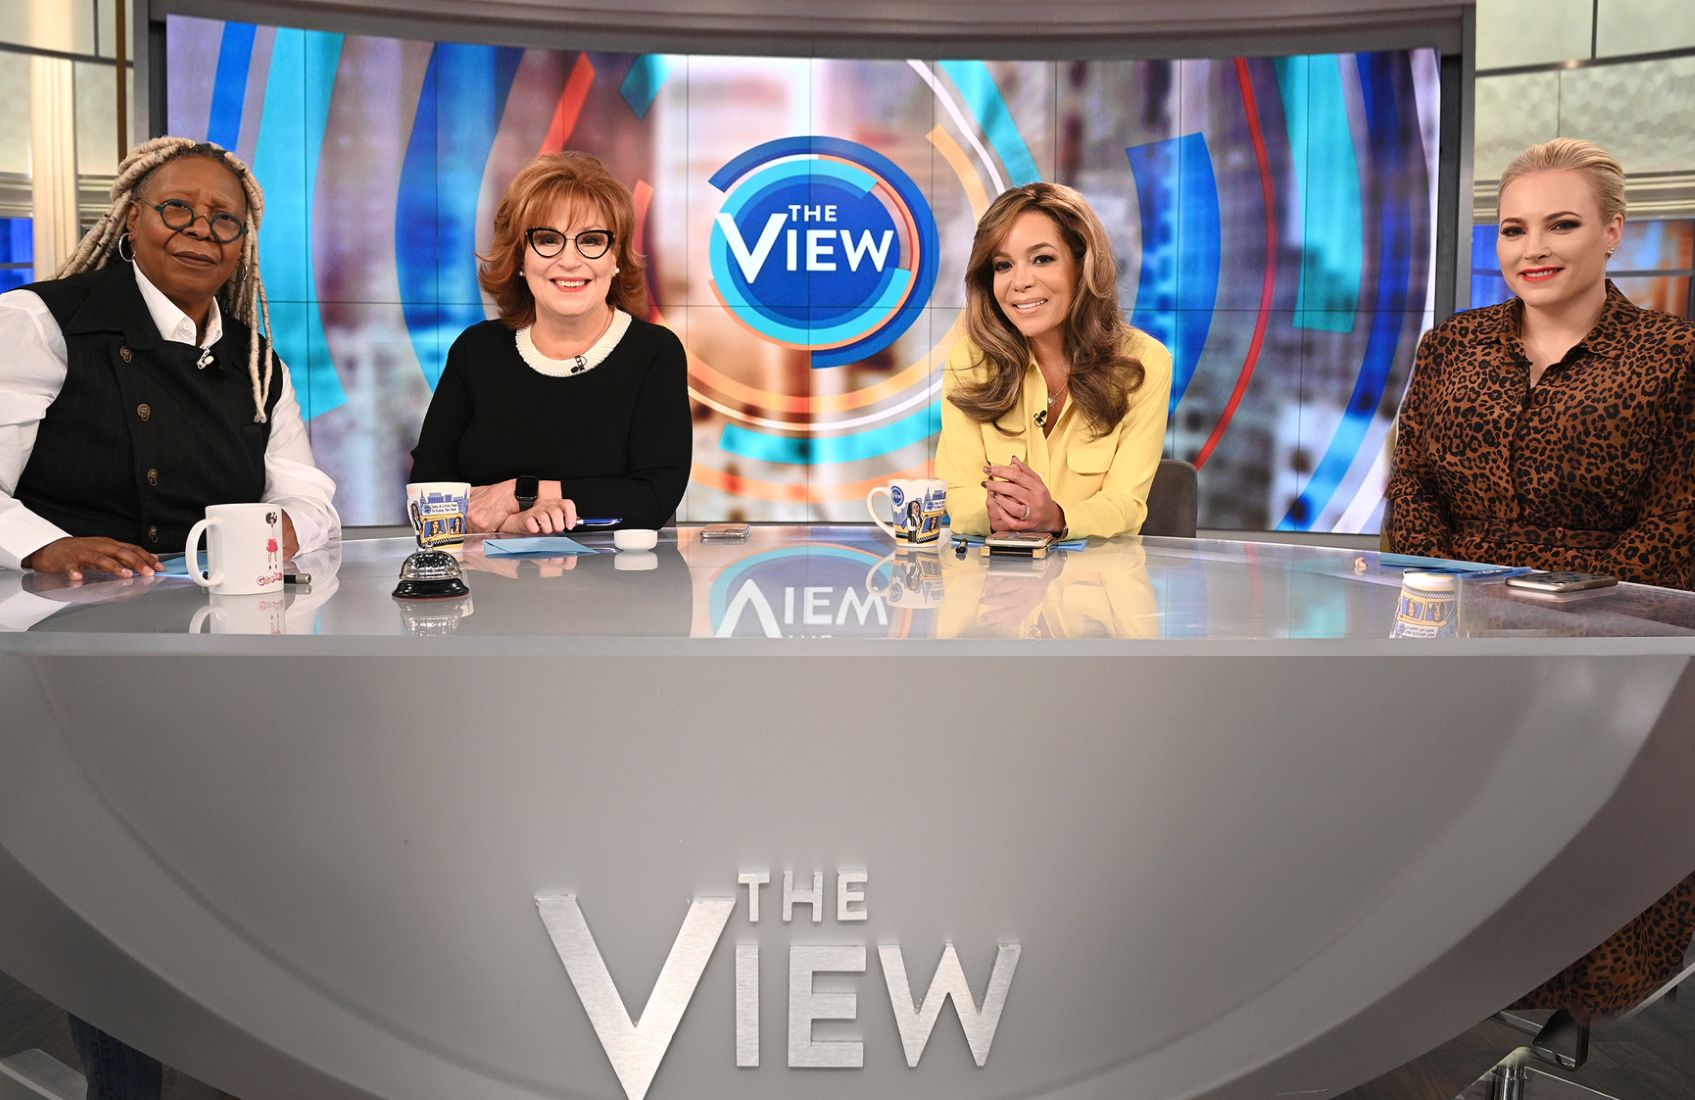 Whoopi Goldberg, Joy Behar, Sunny Hostin and Meghan McCain on The View. (ABC)